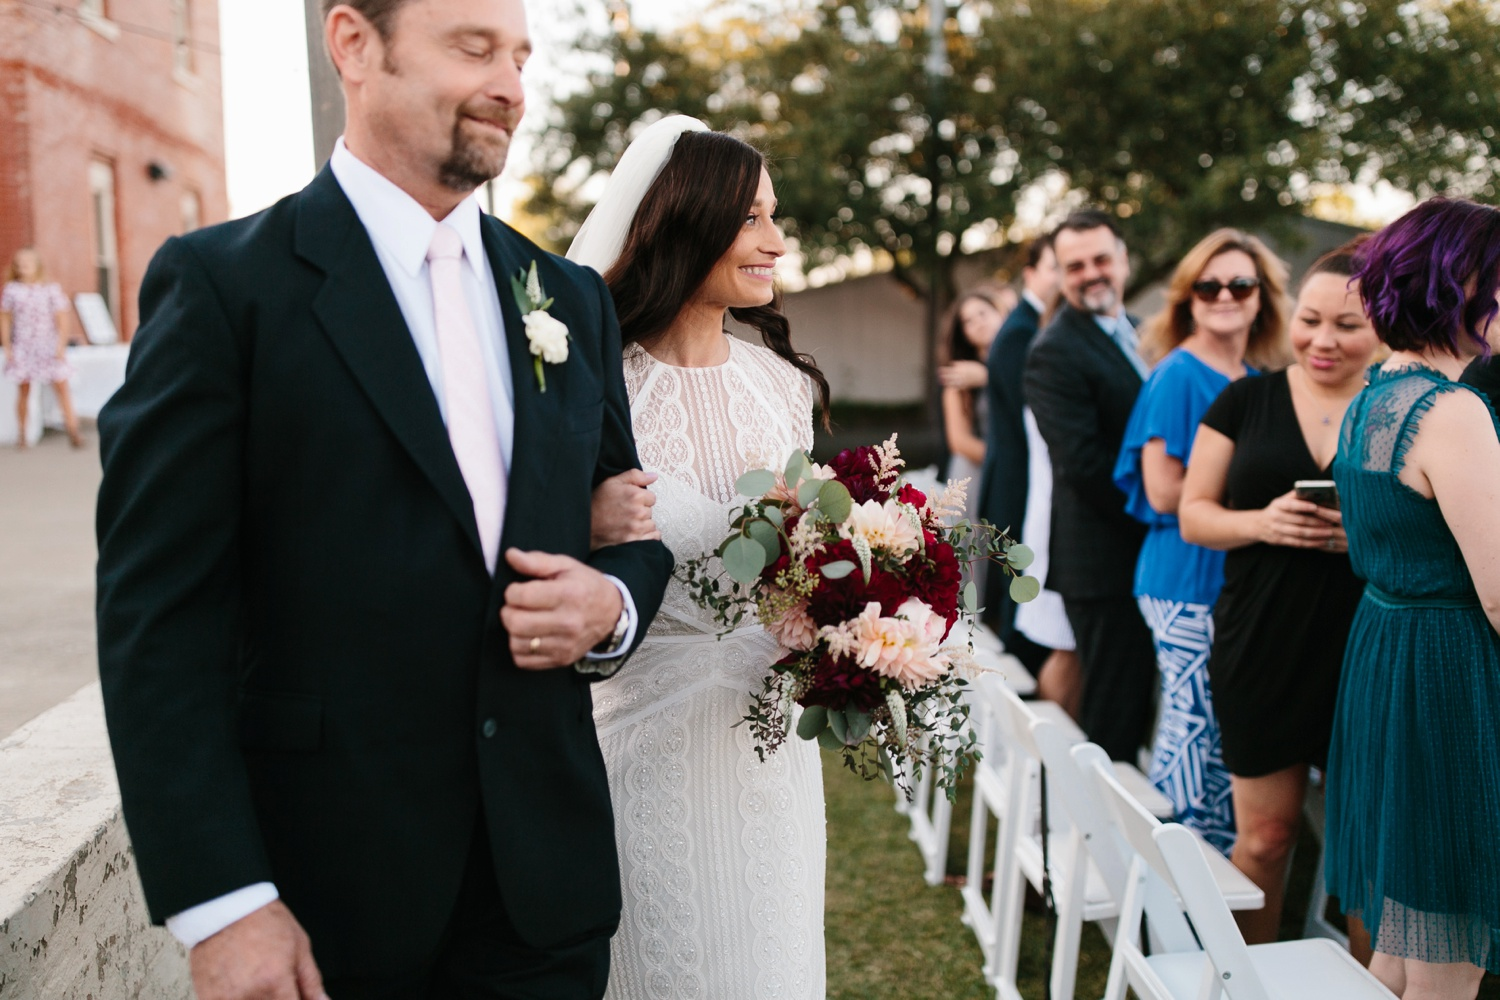 Kadee + Tyler | a raw, emotional wedding at the Filter Building on White Rock Lake in Dallas, TX by North Texas Wedding Photographer, Rachel Meagan Photography 122